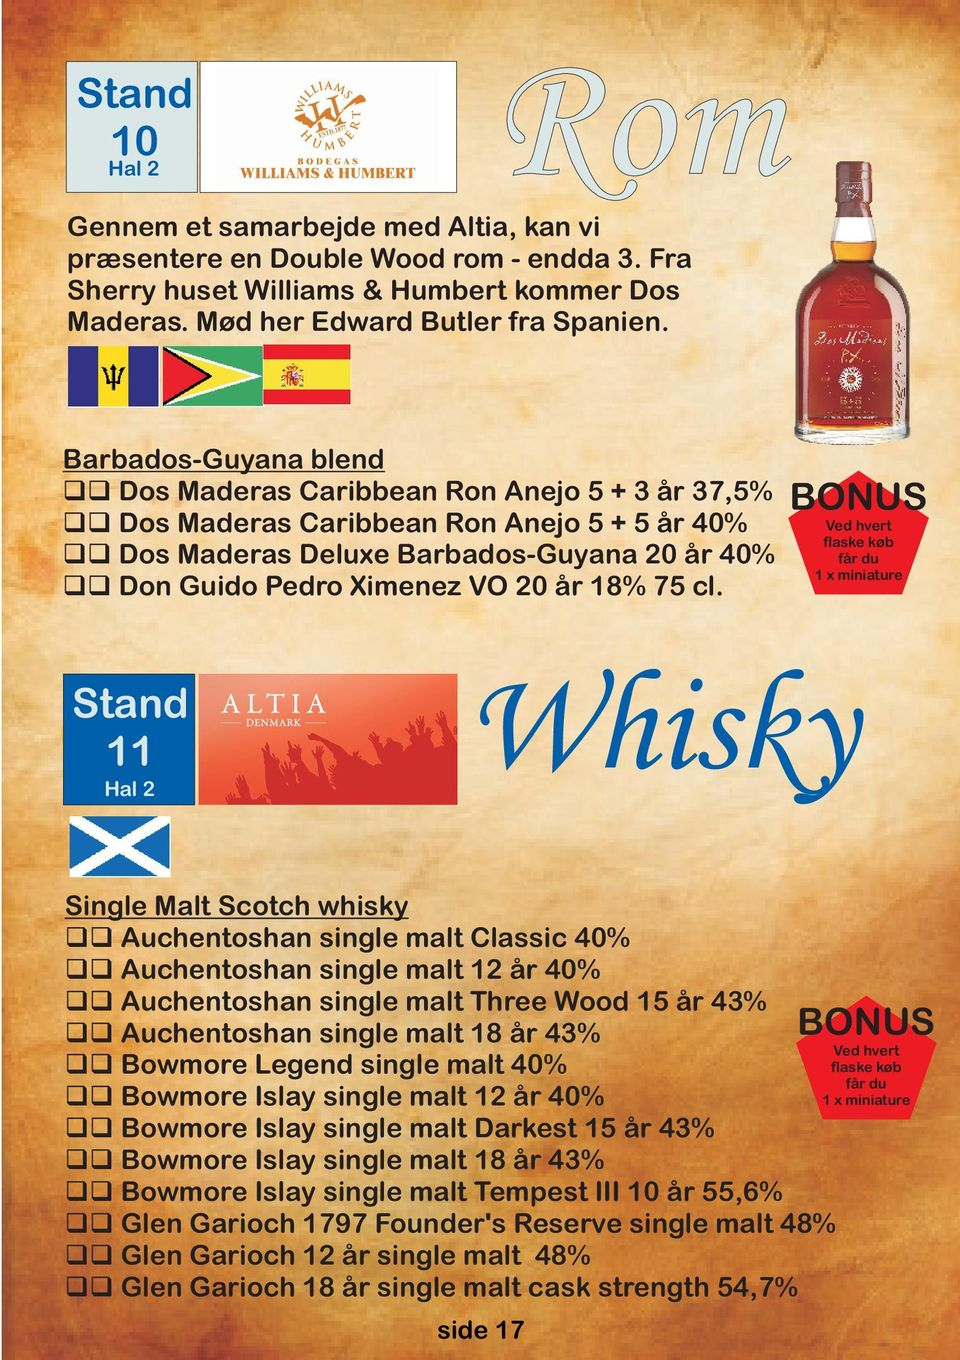 cl. BONUS Ved hvert flaske køb får du 1 x miniature Stand 11 Whisky Single Malt Scotch whisky Auchentoshan single malt Classic 40% Auchentoshan single malt 12 år 40% Auchentoshan single malt Three